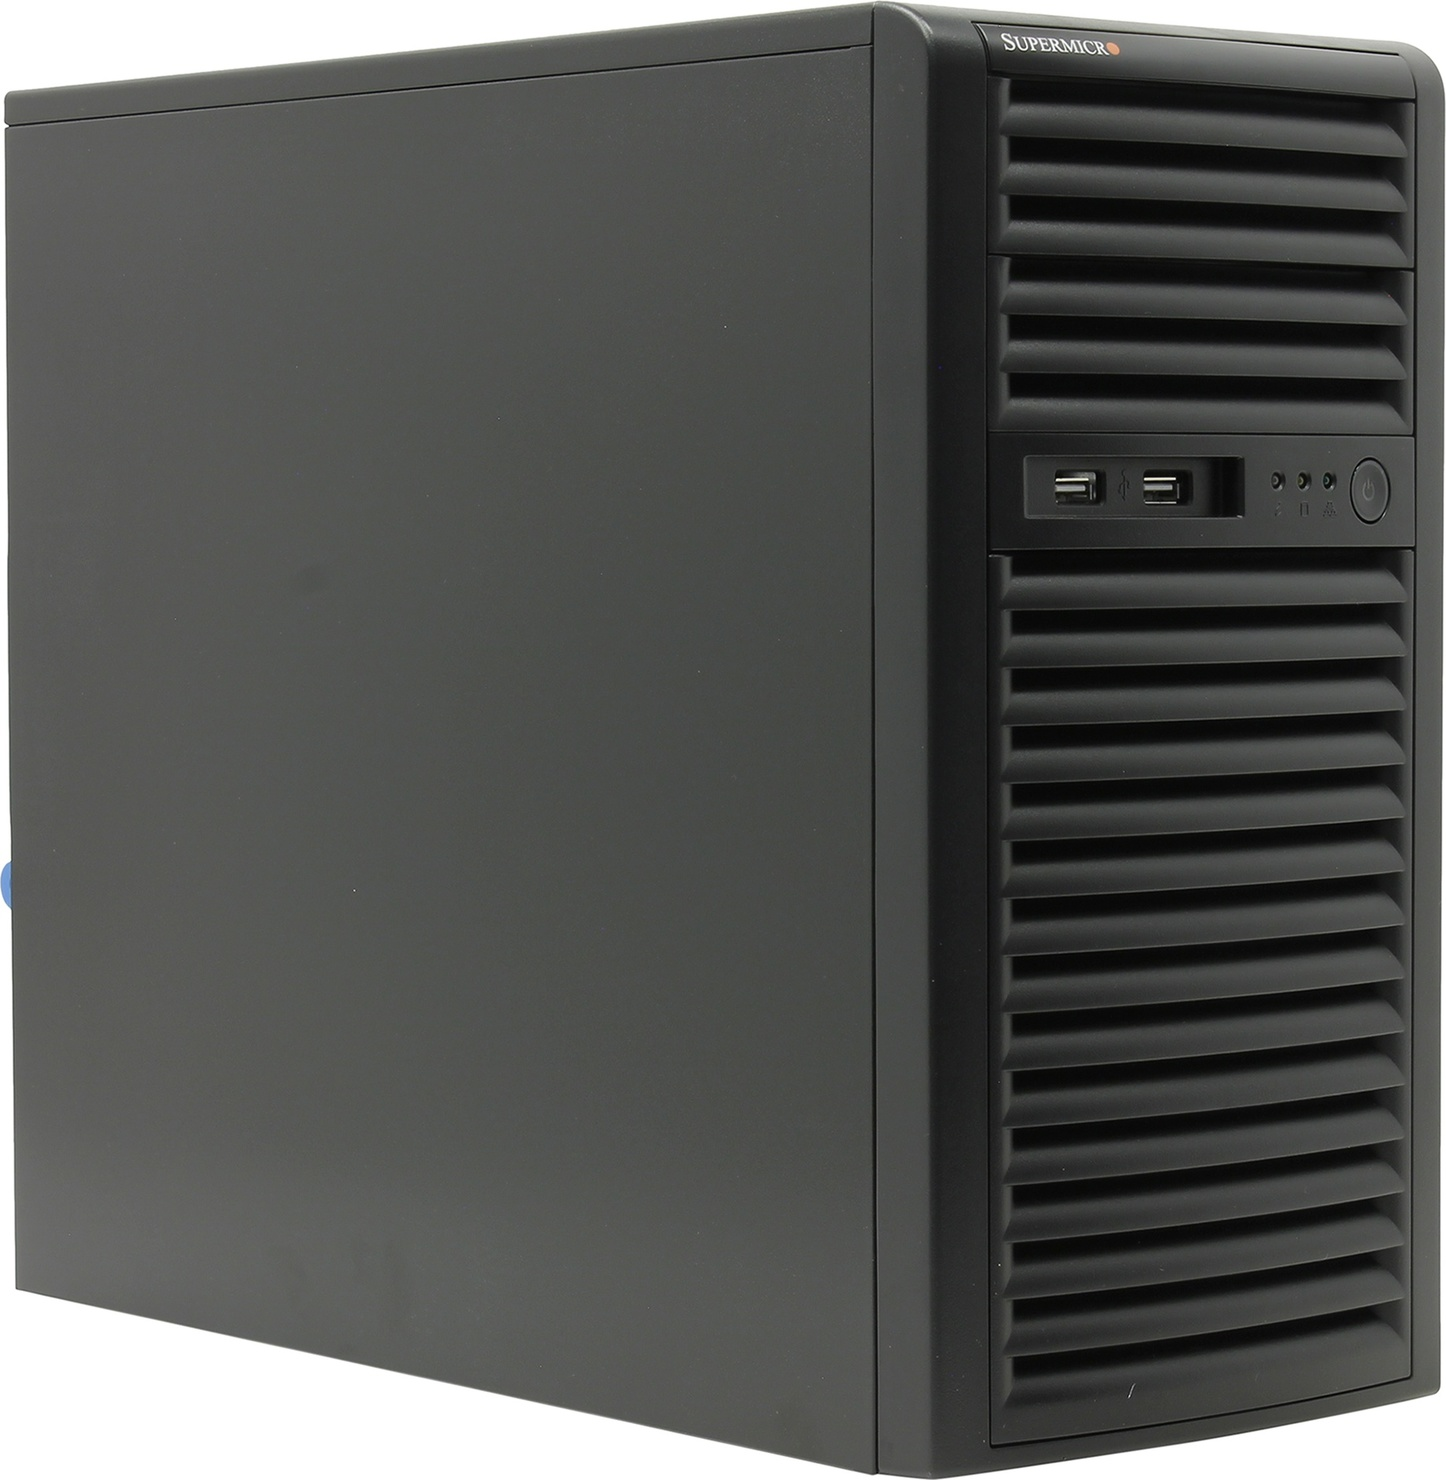 Сервер SERVER Tower 0110 0662613/1xE3-1220V6/1x8gb/2x1tb/1x300w сервер вов